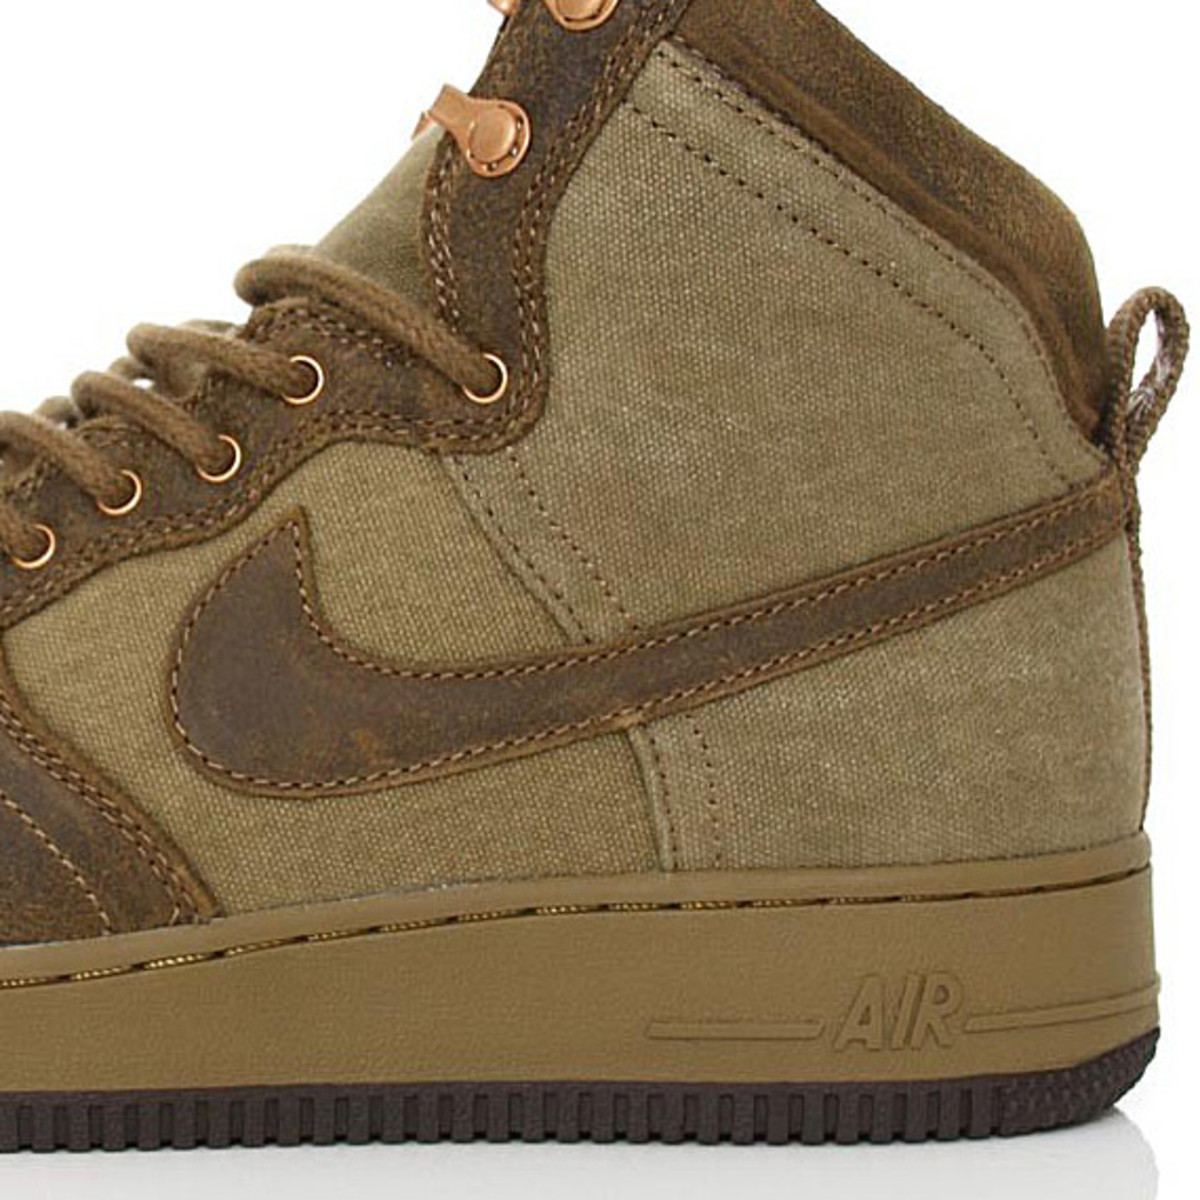 nike-air-force-1-hi-dcn-military-boot-raw-umber-03